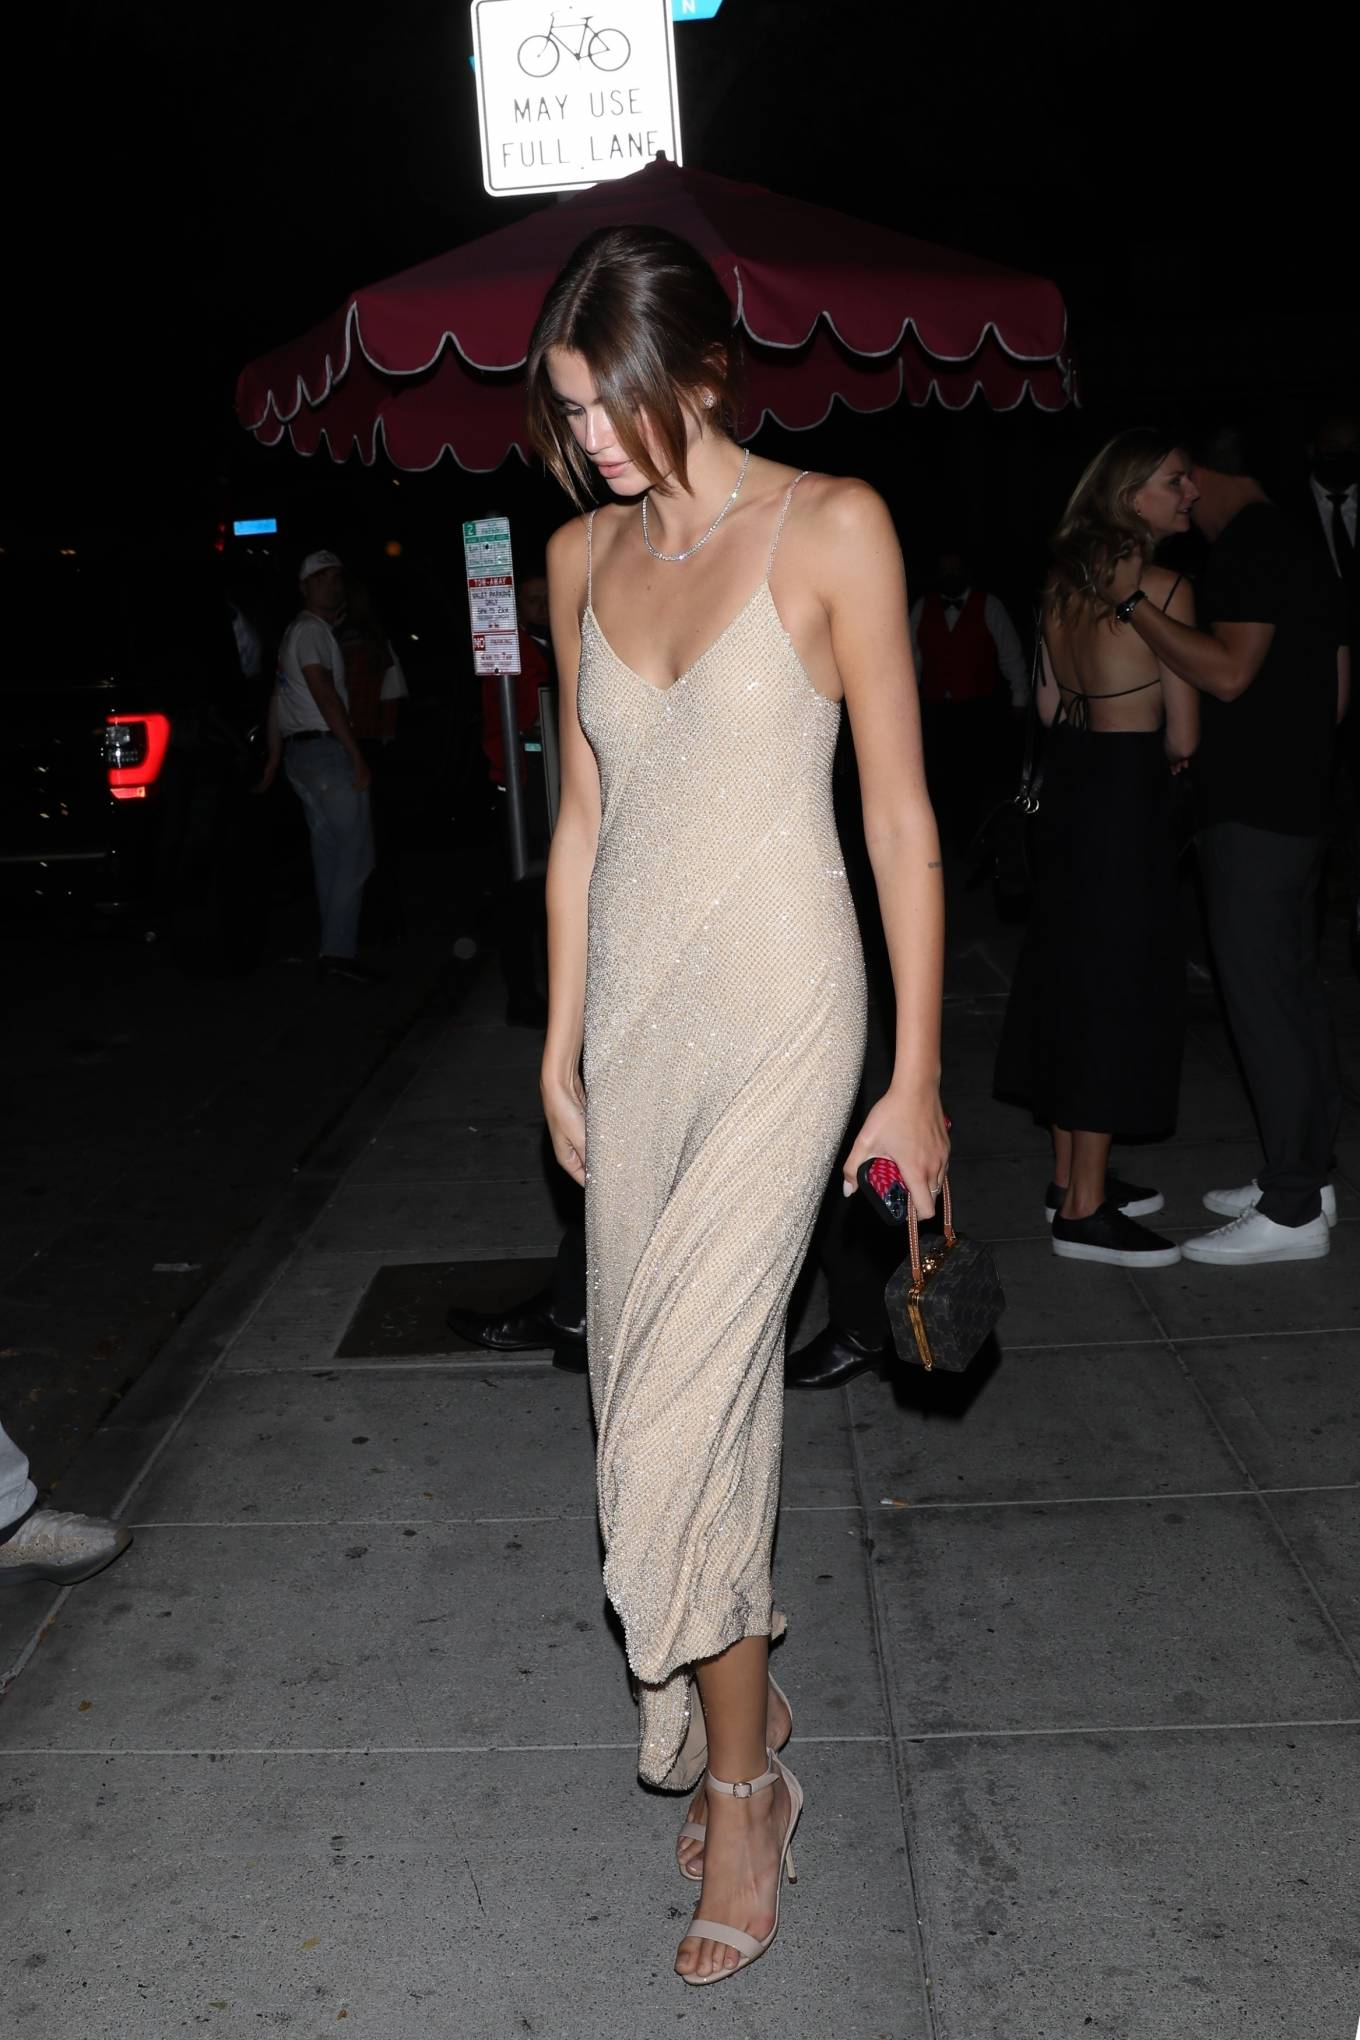 Kaia Gerber - With boyfriend Jacob Elordi at the Delilah nightclub in West Hollywood